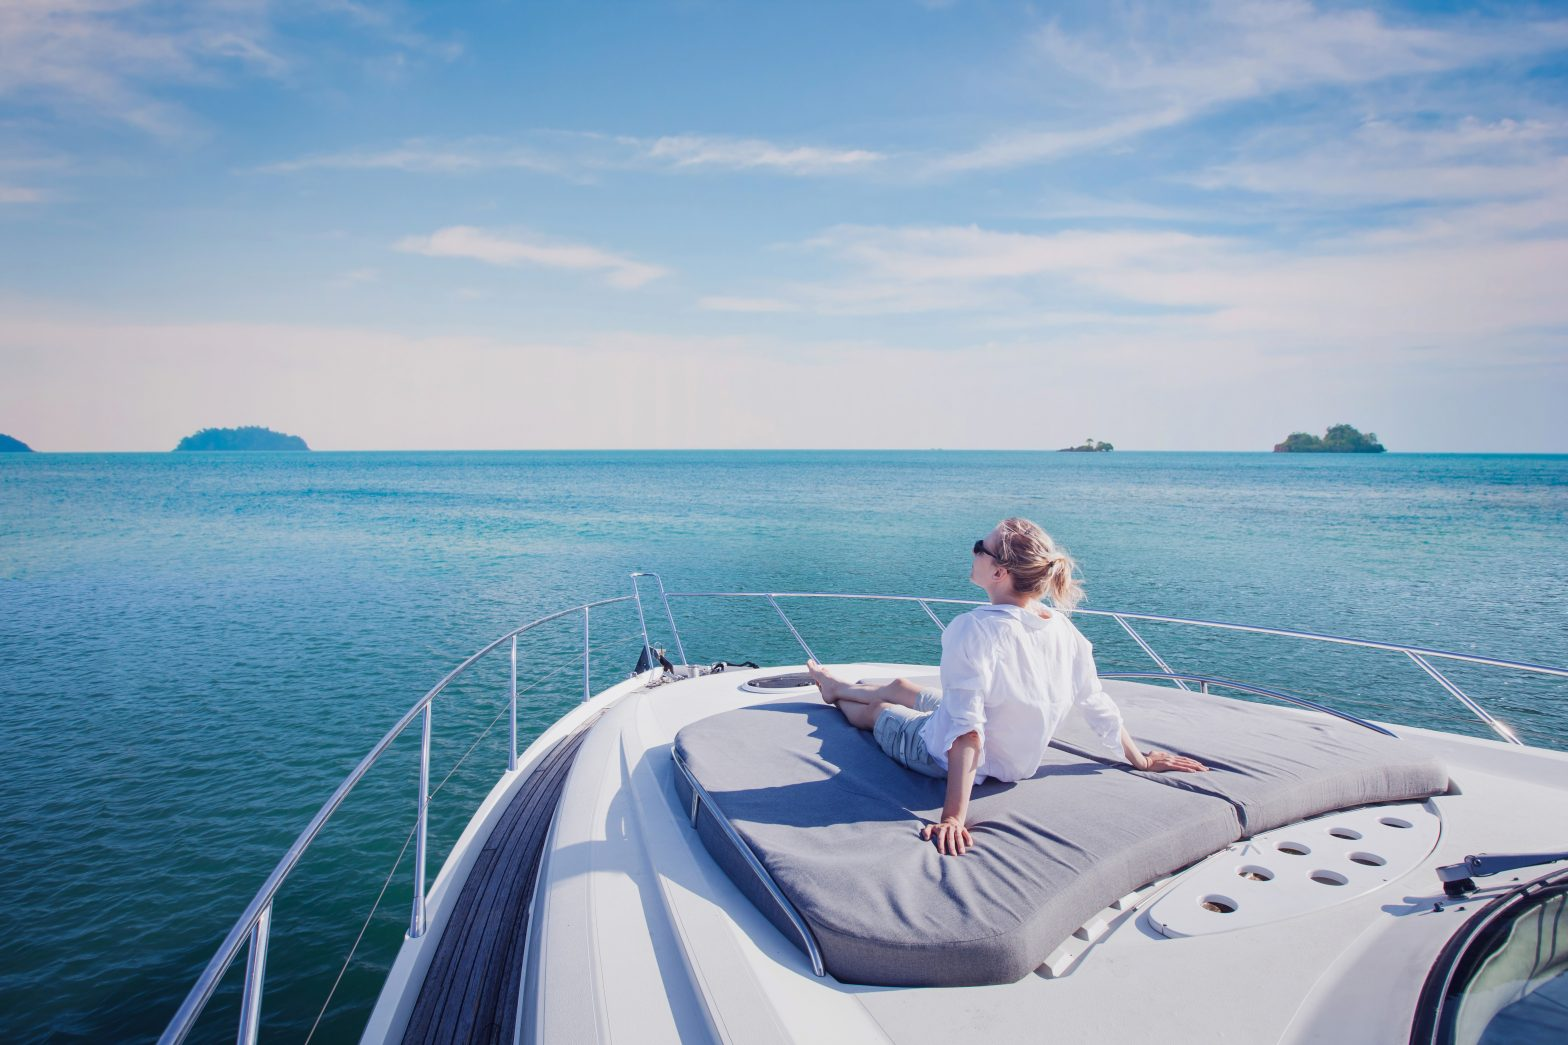 Woman Relaxing on the deck of a luxury boat